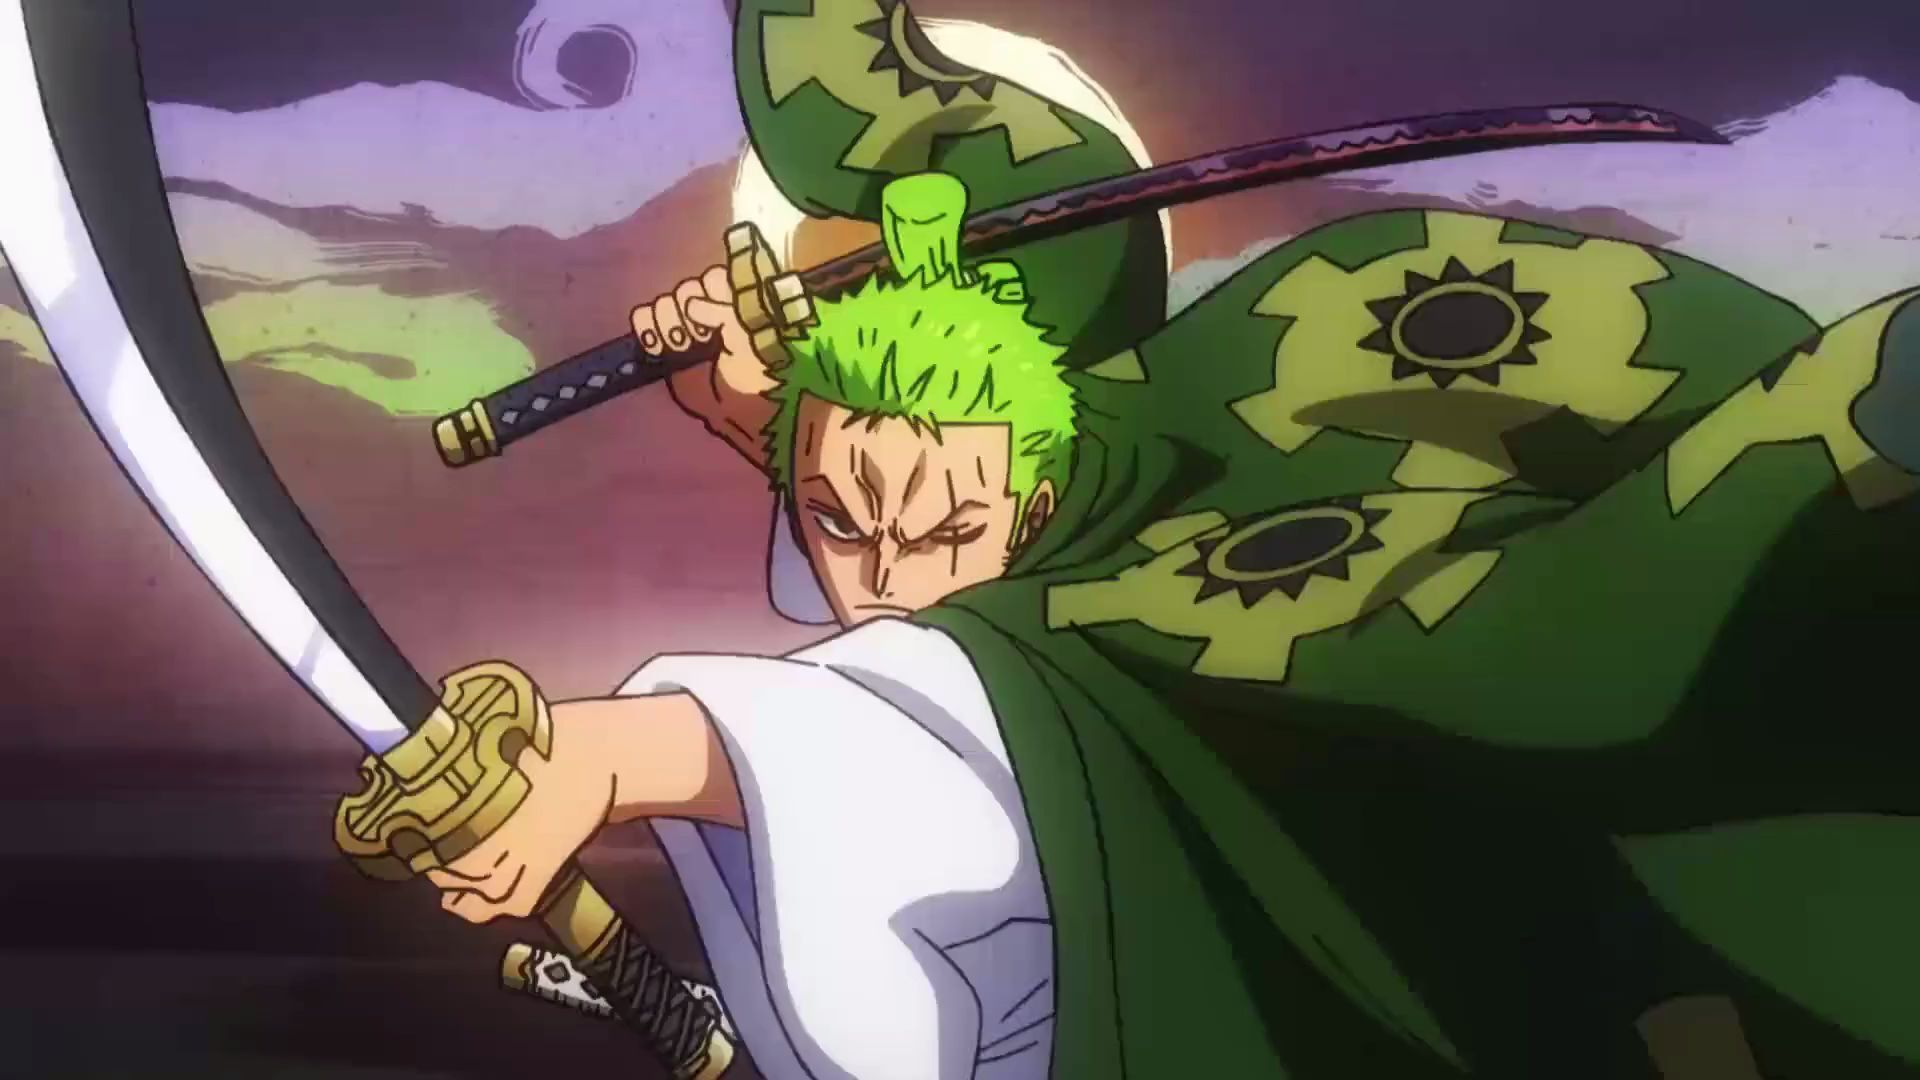 Zoro Wano Wallpapers Top Free Zoro Wano Backgrounds Wallpaperaccess One Piece Roronoa Zoro Hinh ảnh